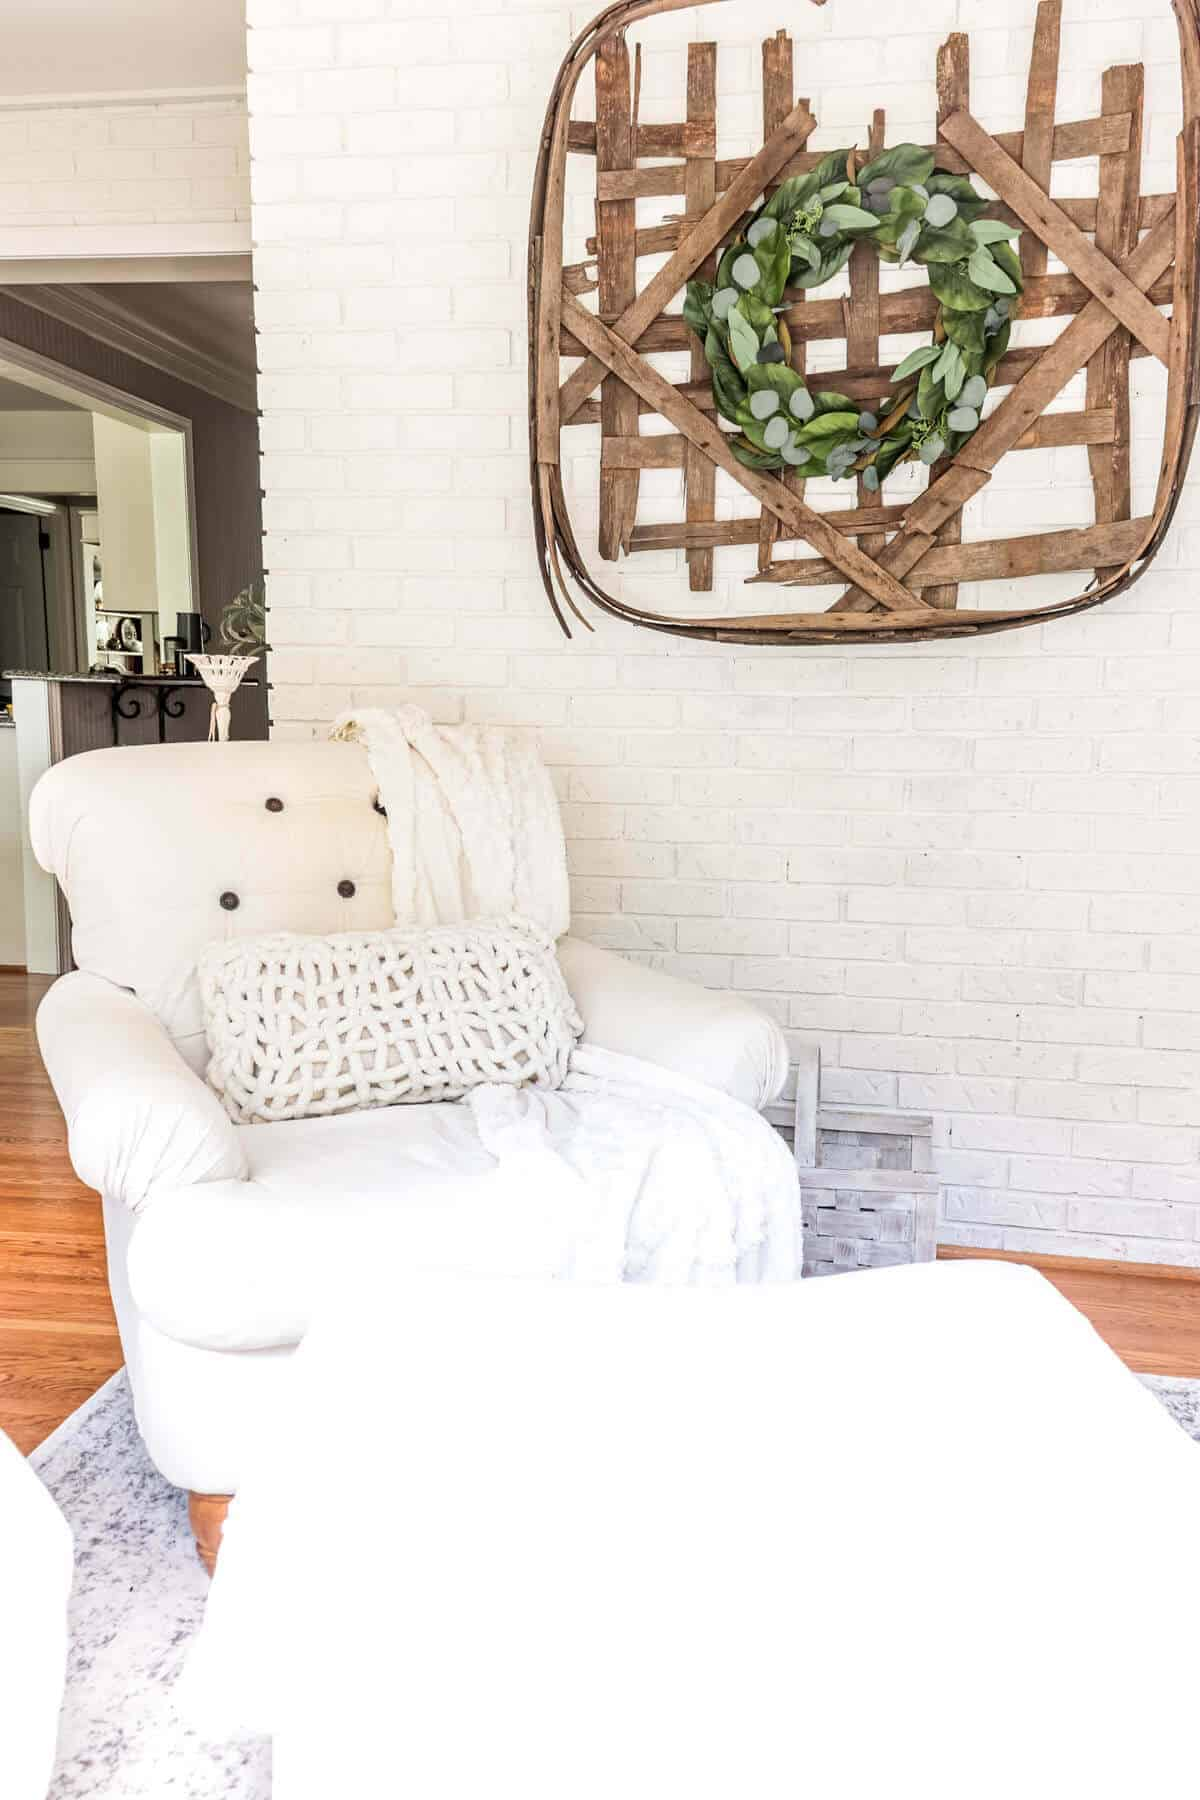 white armchair next to a white lime washed brick wall with a tobacco basket and wreath hanging on the wall